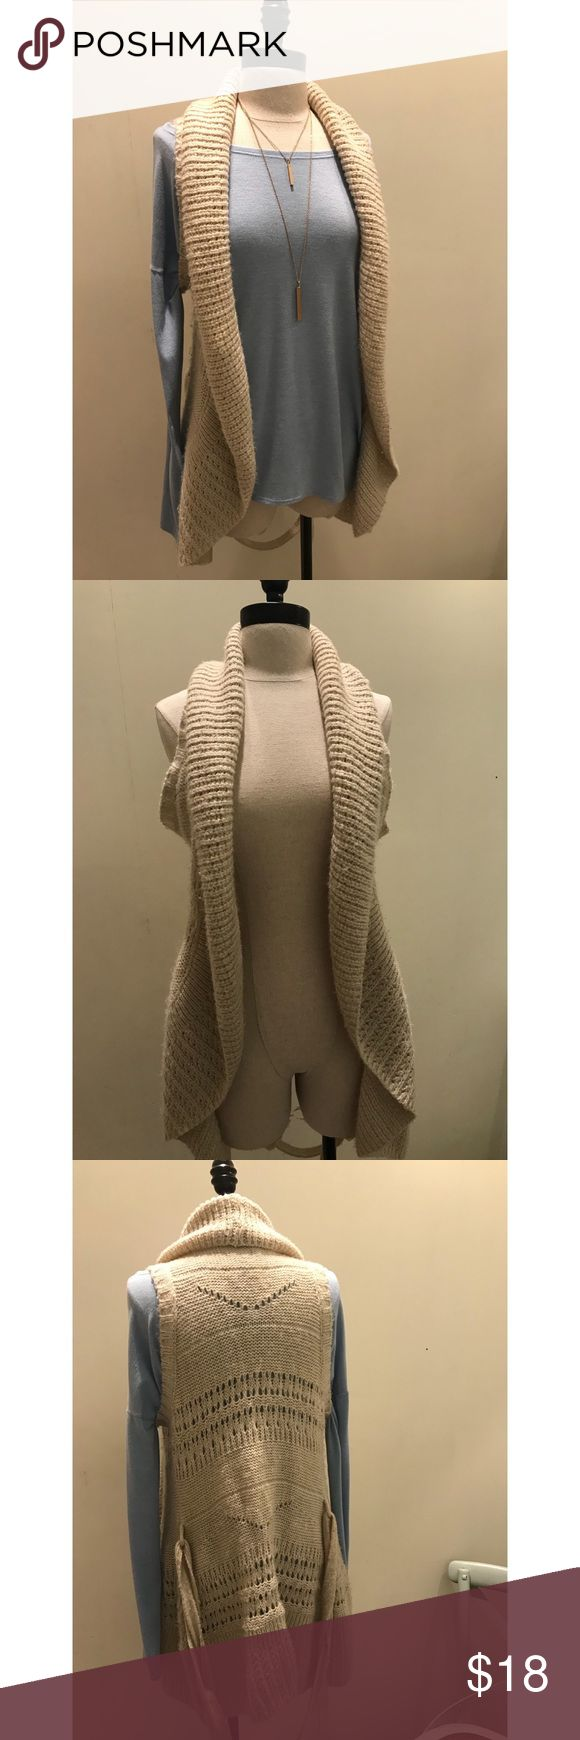 Warm, cream vest for a nice day out Super soft, extremely comfy sweater-material vest for over top anything.  LARGE (can fit a small) Always accepting offers ❤️❤️ Jackets & Coats Vests